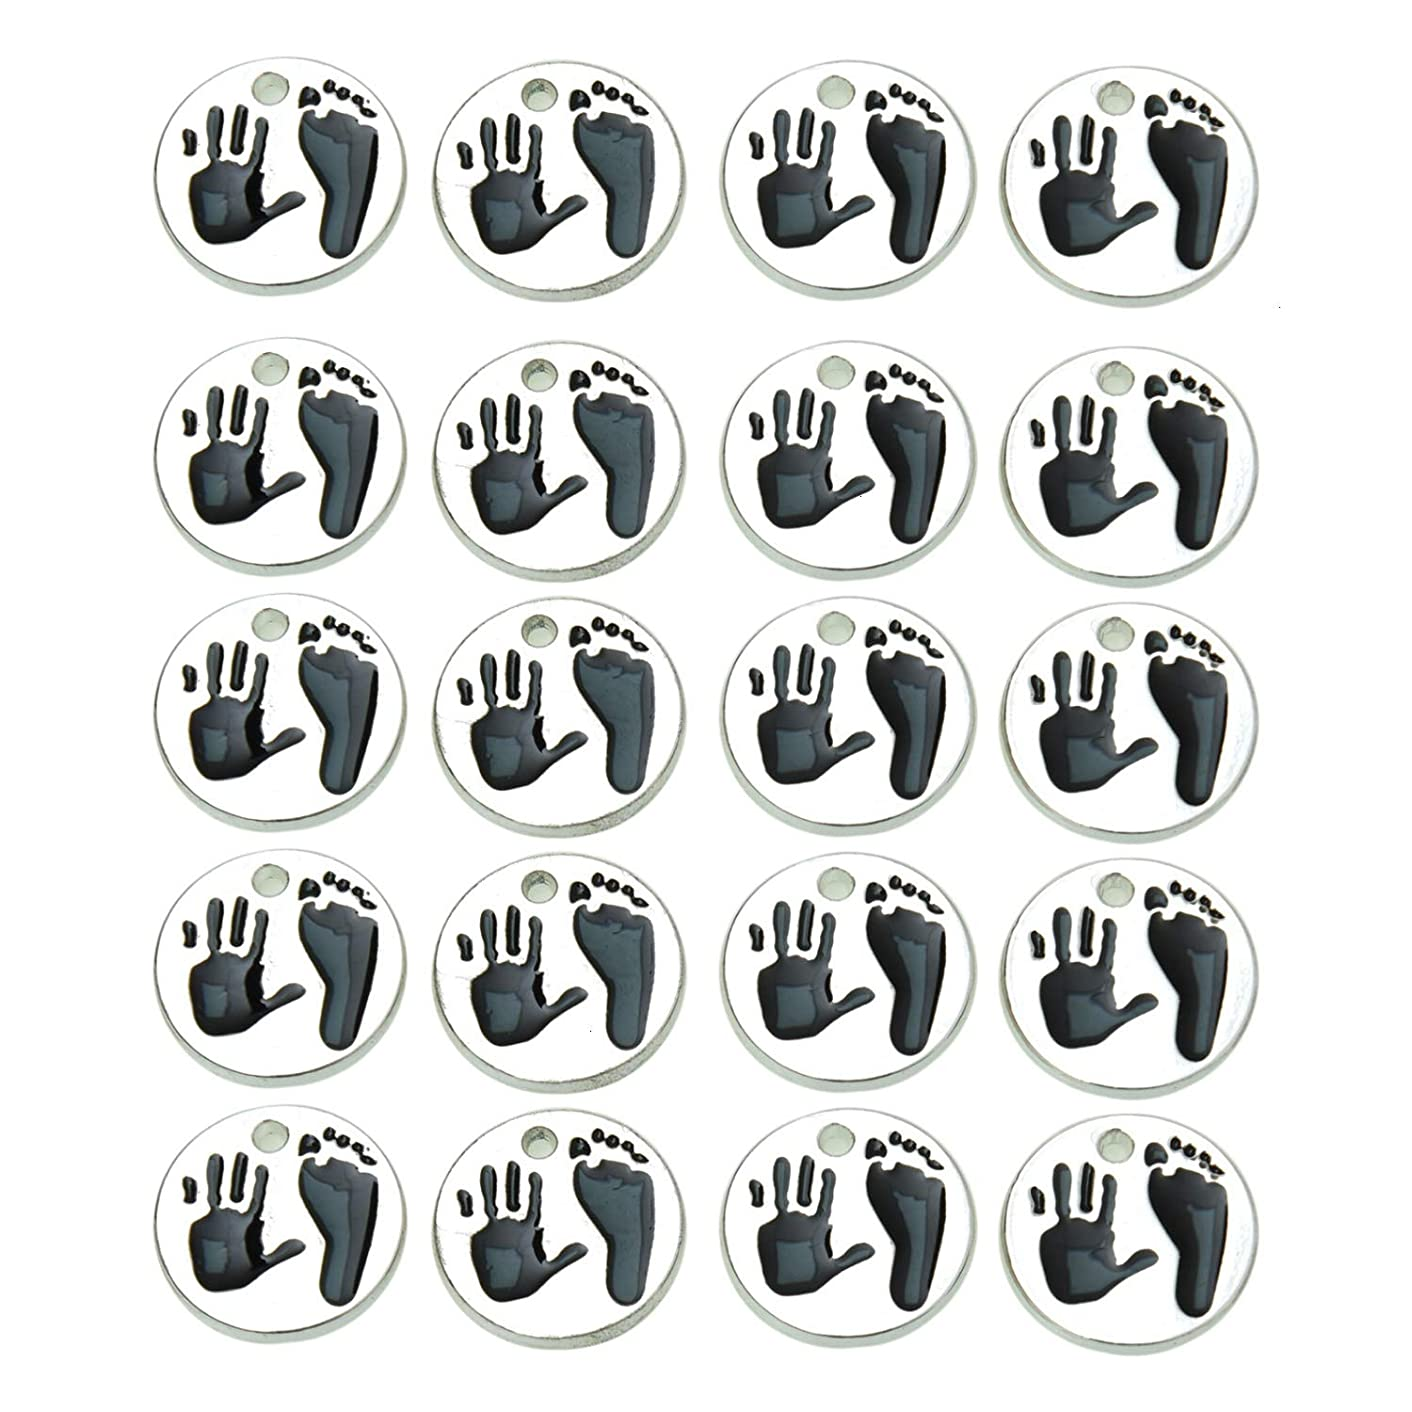 Monrocco 20 Pack Antique Silver Round Handprint Foorprint Charms Pendant for Bracelets Jewelry Making